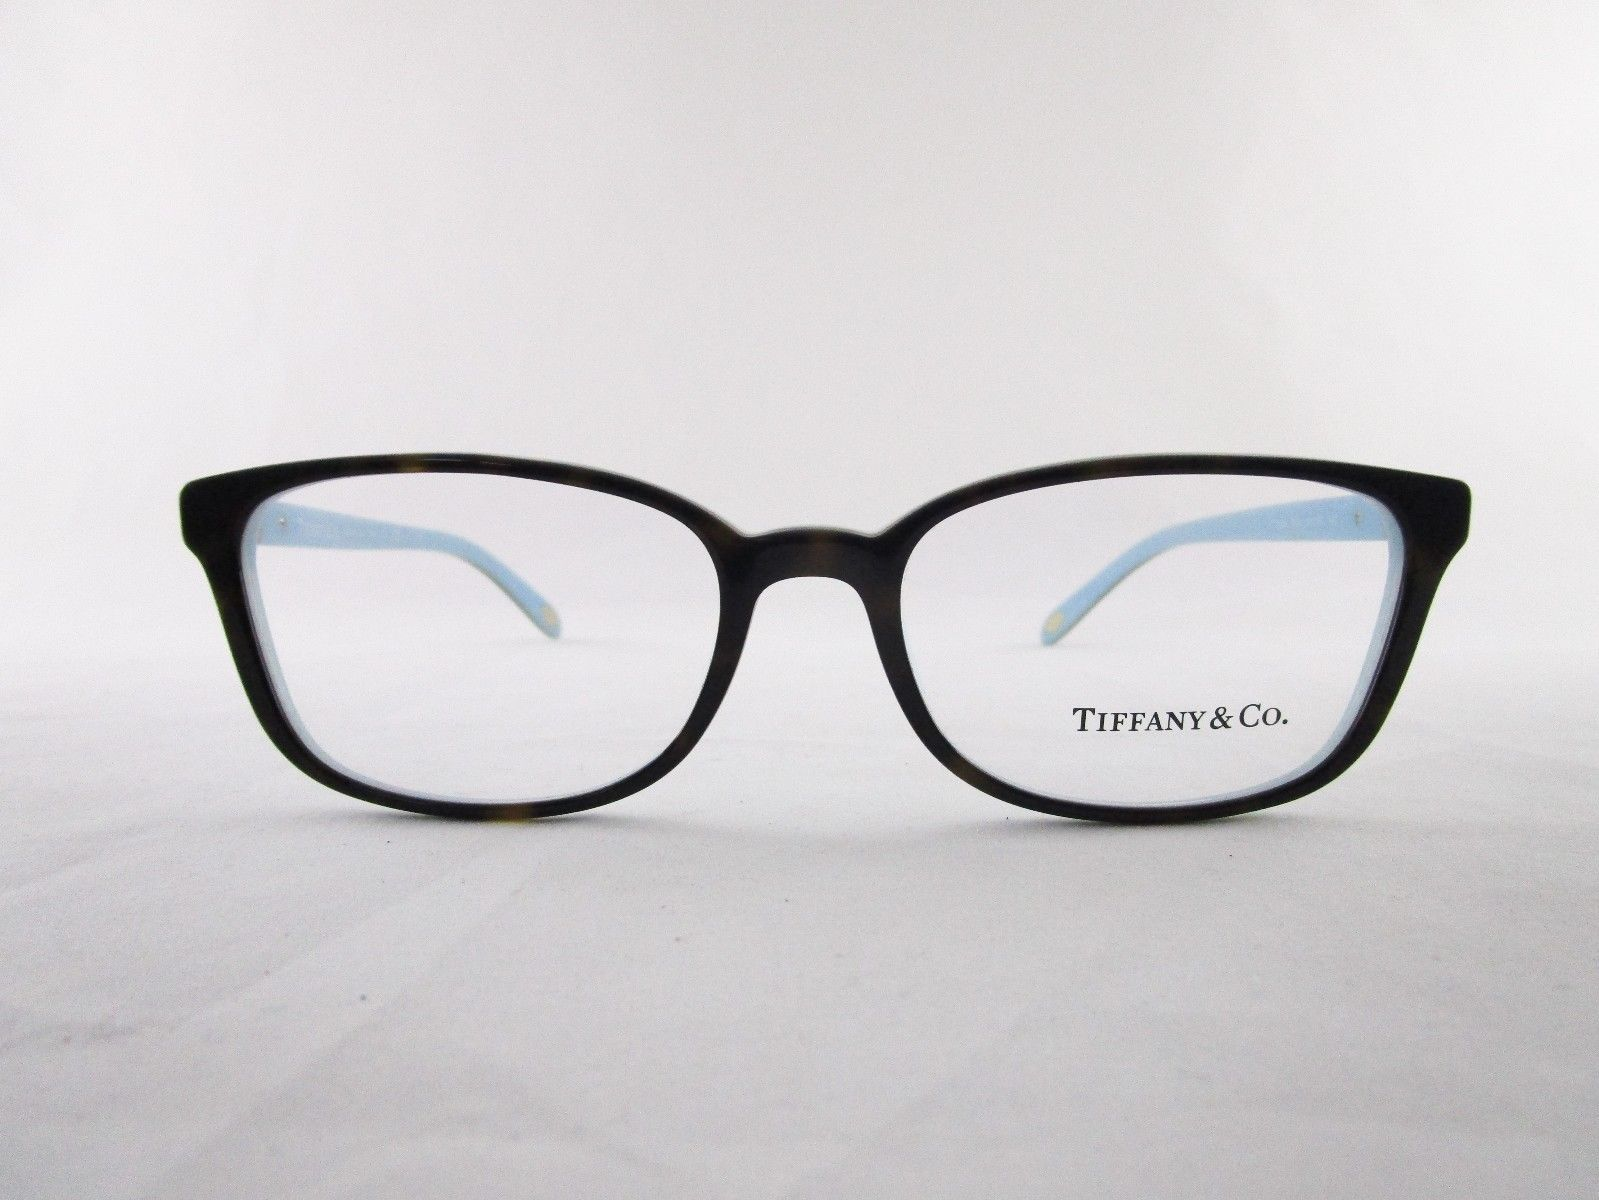 Tiffany & Co TF2109-H-B 8134 Optical Frame and 50 similar items